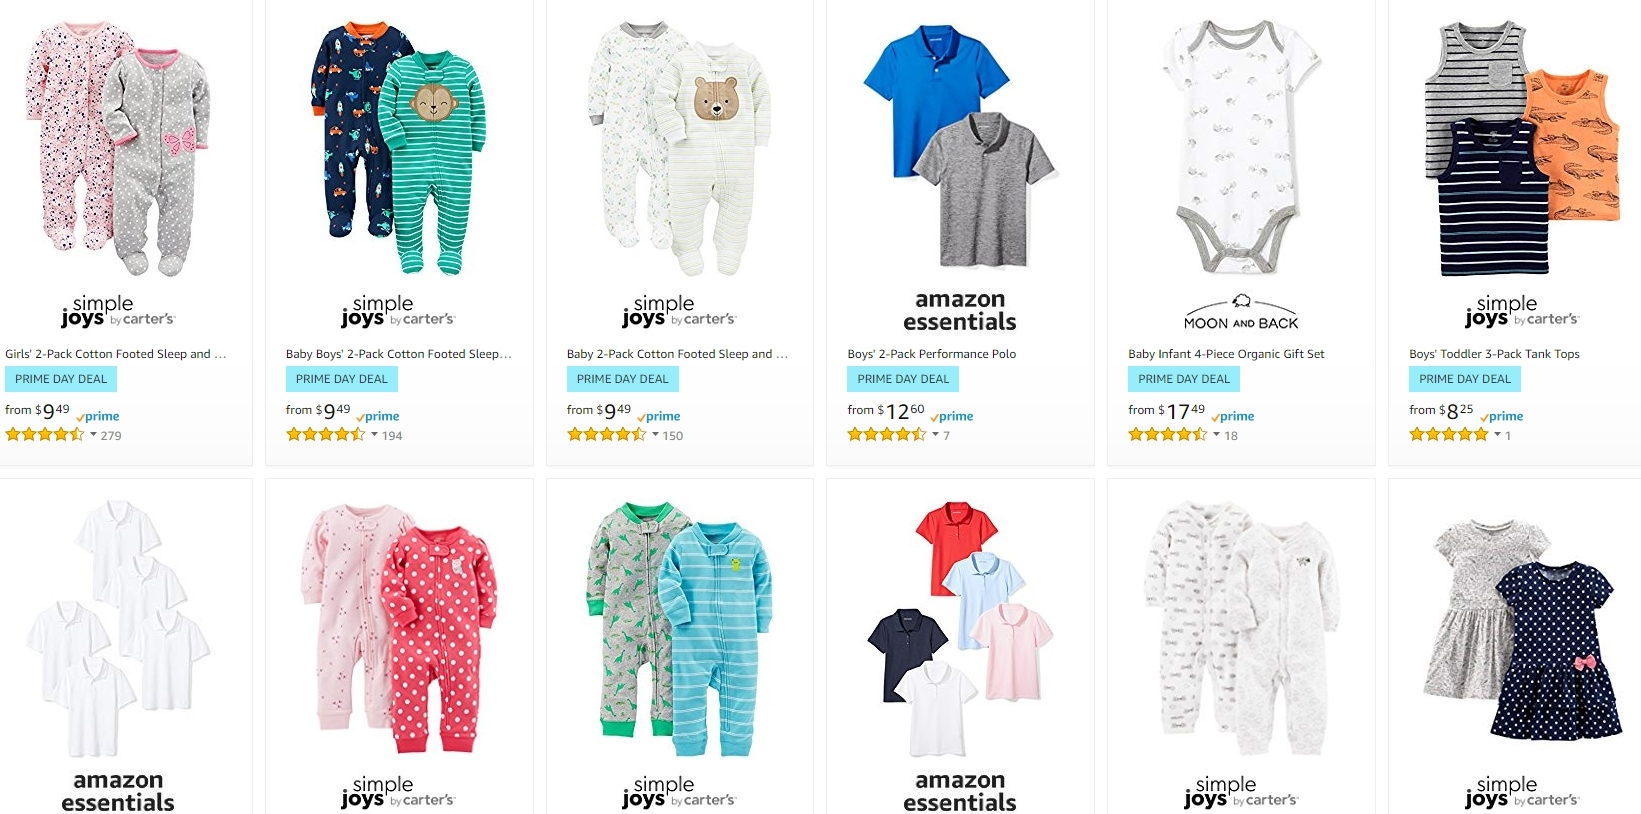 Save Up To 50 On Kids Clothing From Amazon After Prime